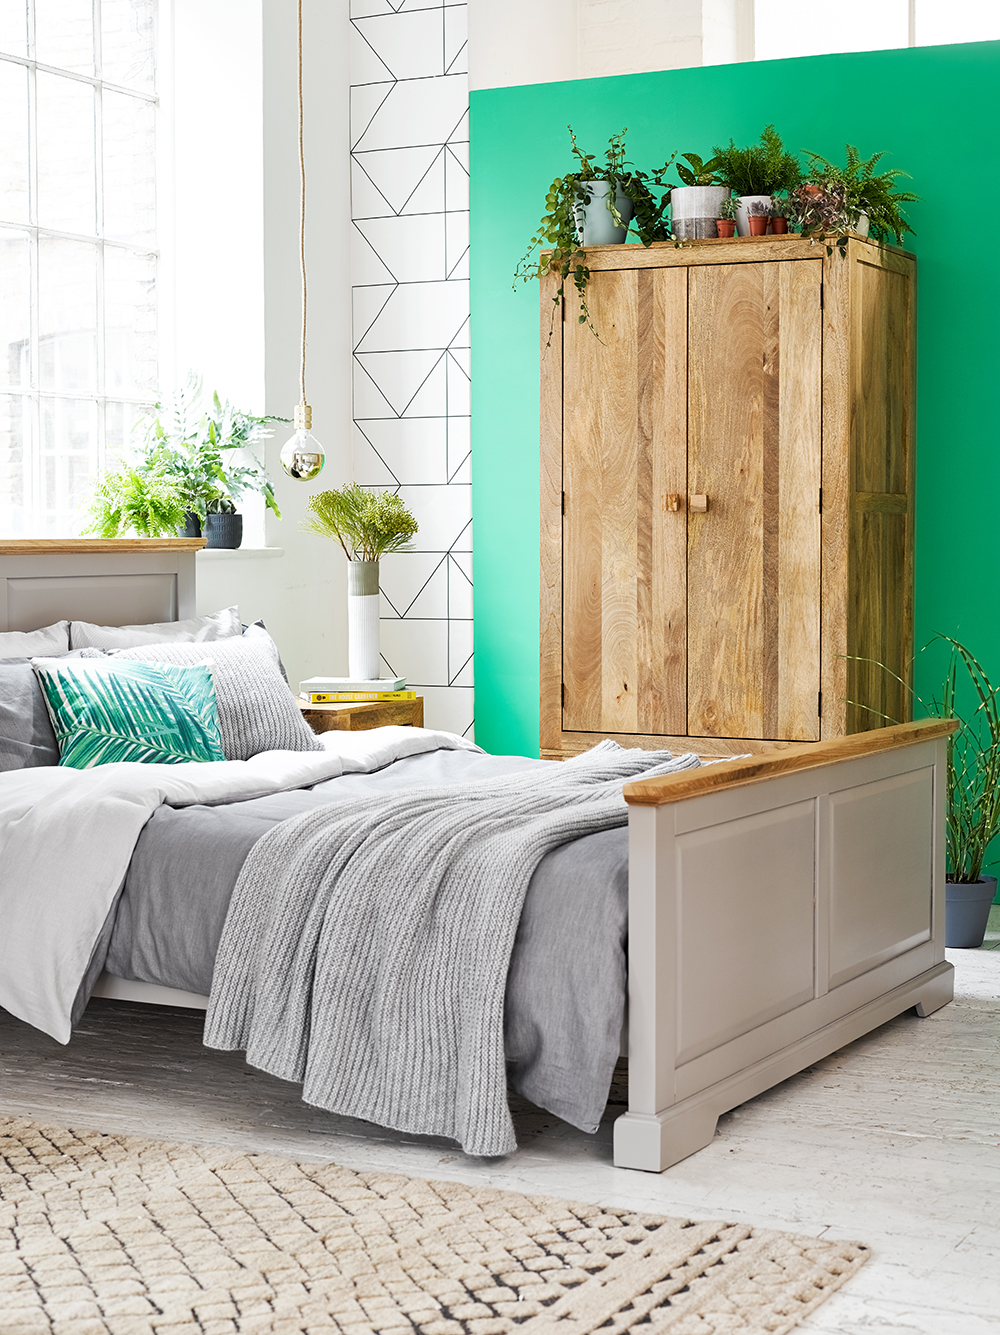 Urban Style Bedroom with Green Wall